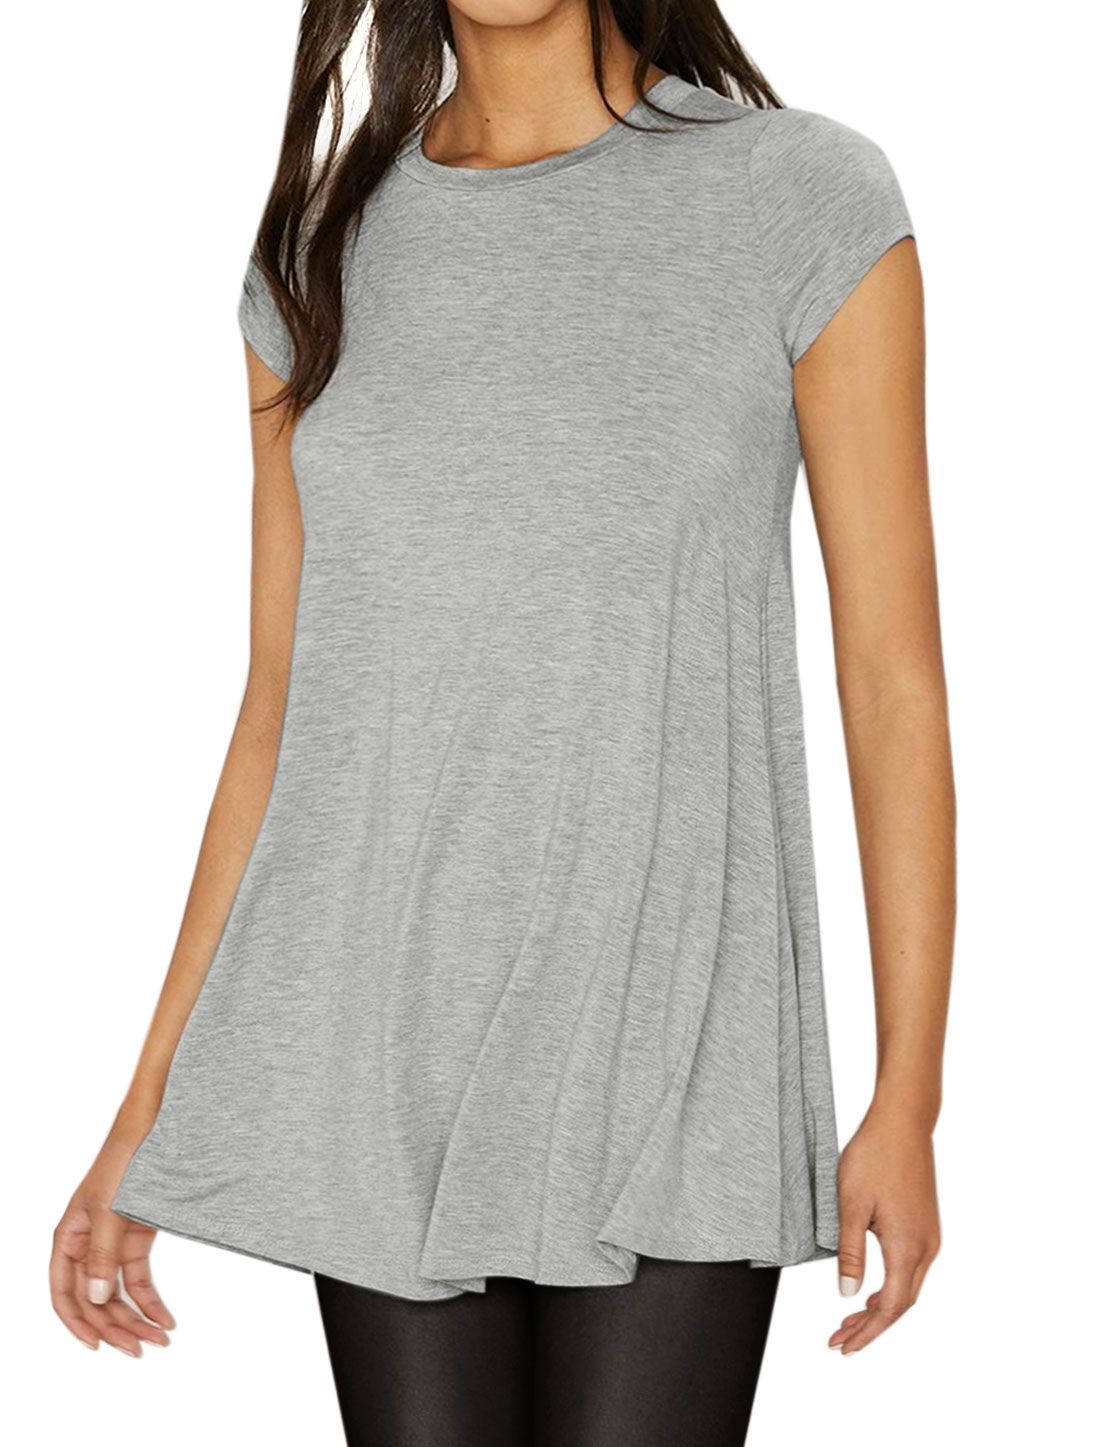 Women Crew Neck Short Sleeves Flare Hem Tunic Tee Gray S